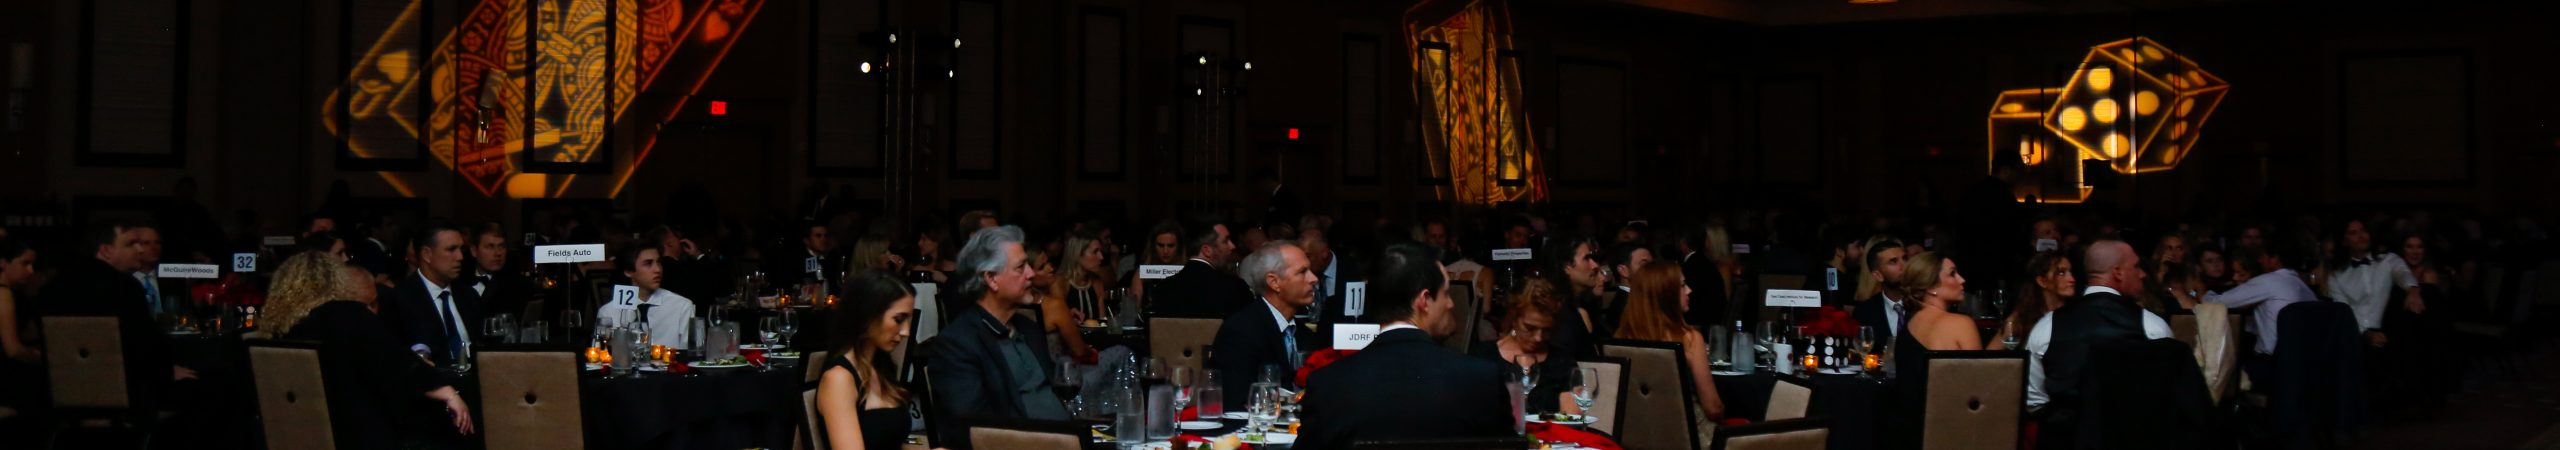 19th Annual Miracles Gala- Kings and Queens